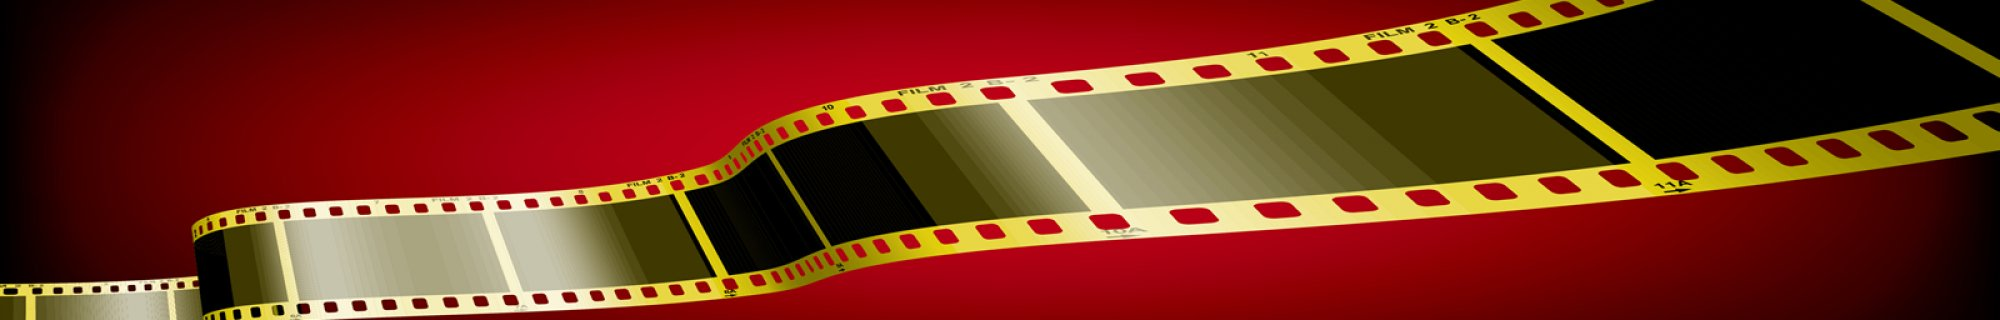 Red and gold film strip